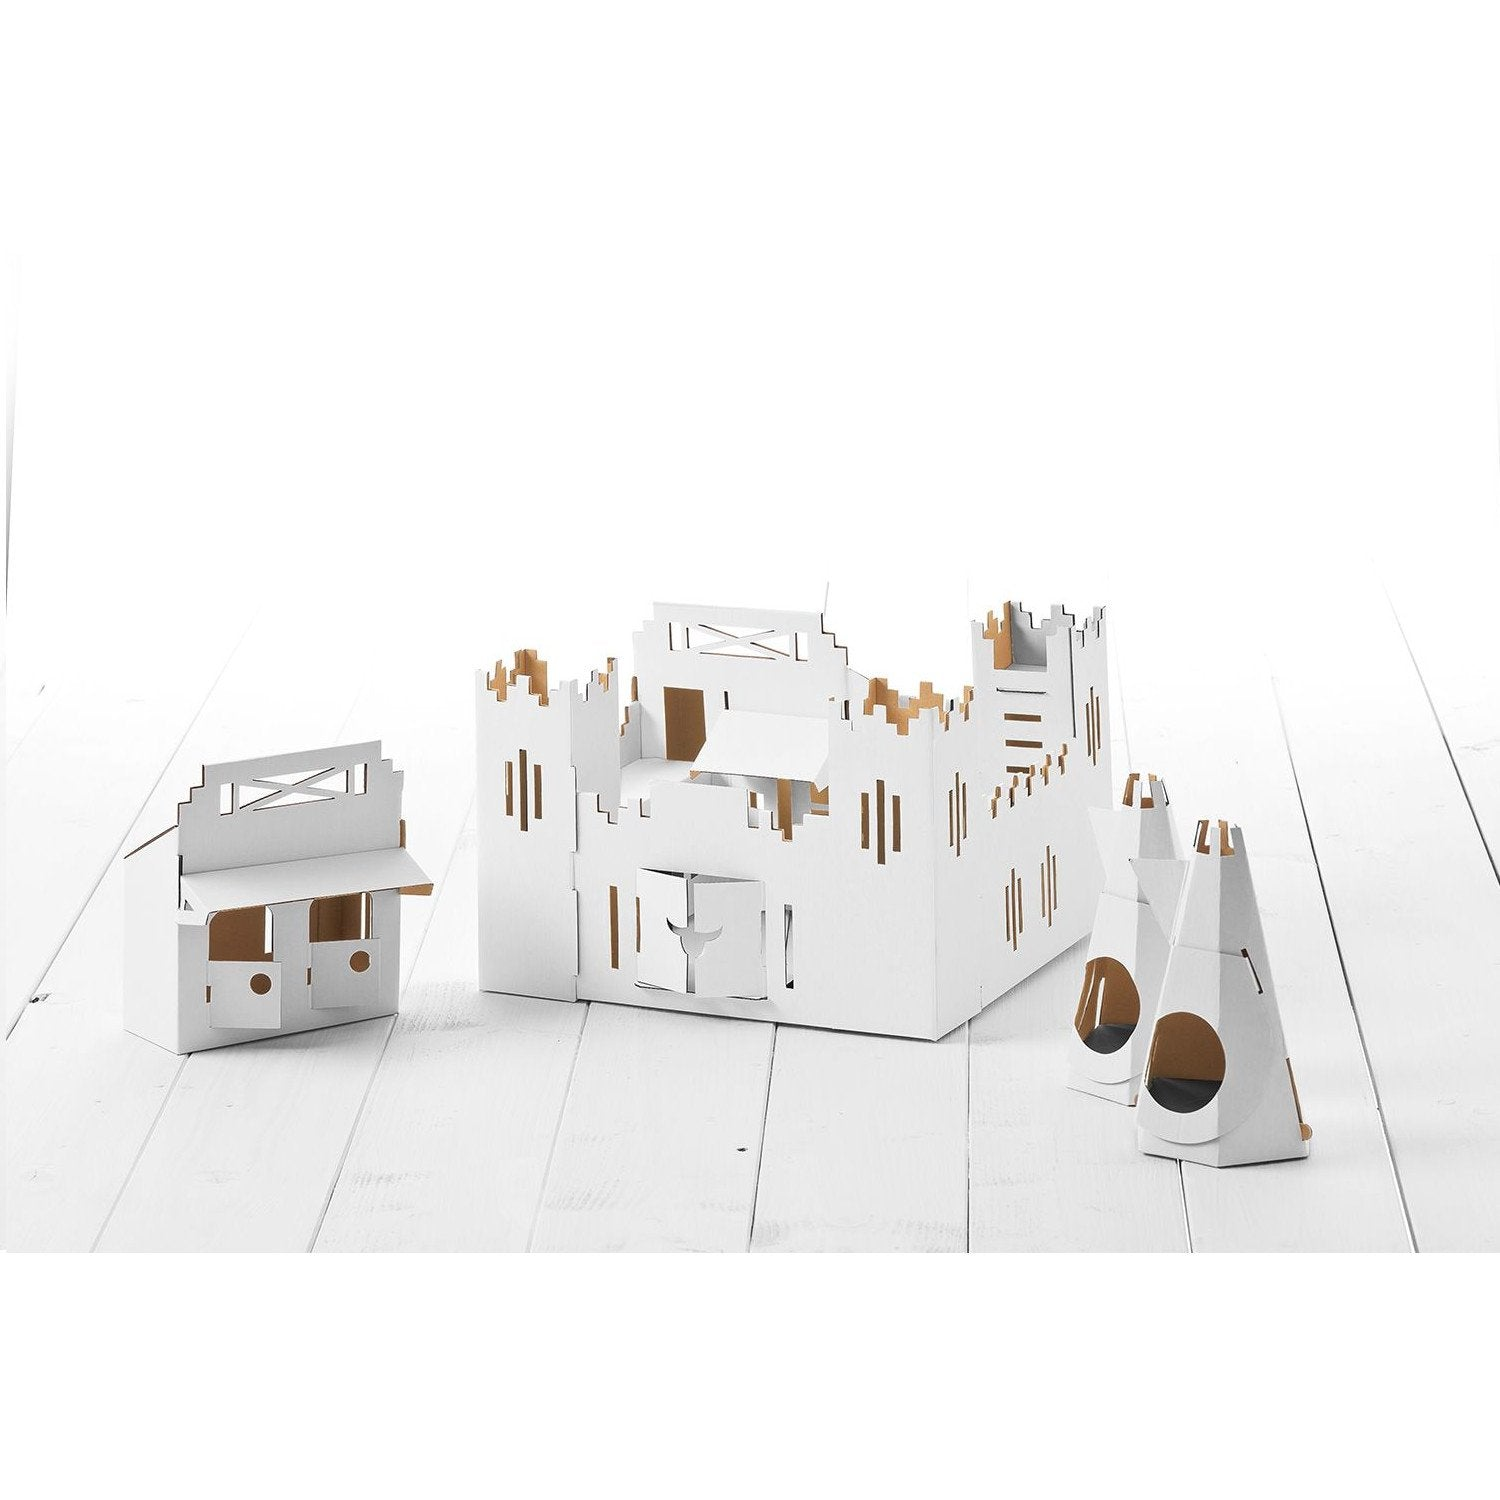 Calafant Level 3 Activity Models Calafant Art and Craft Kits at Little Earth Nest Eco Shop